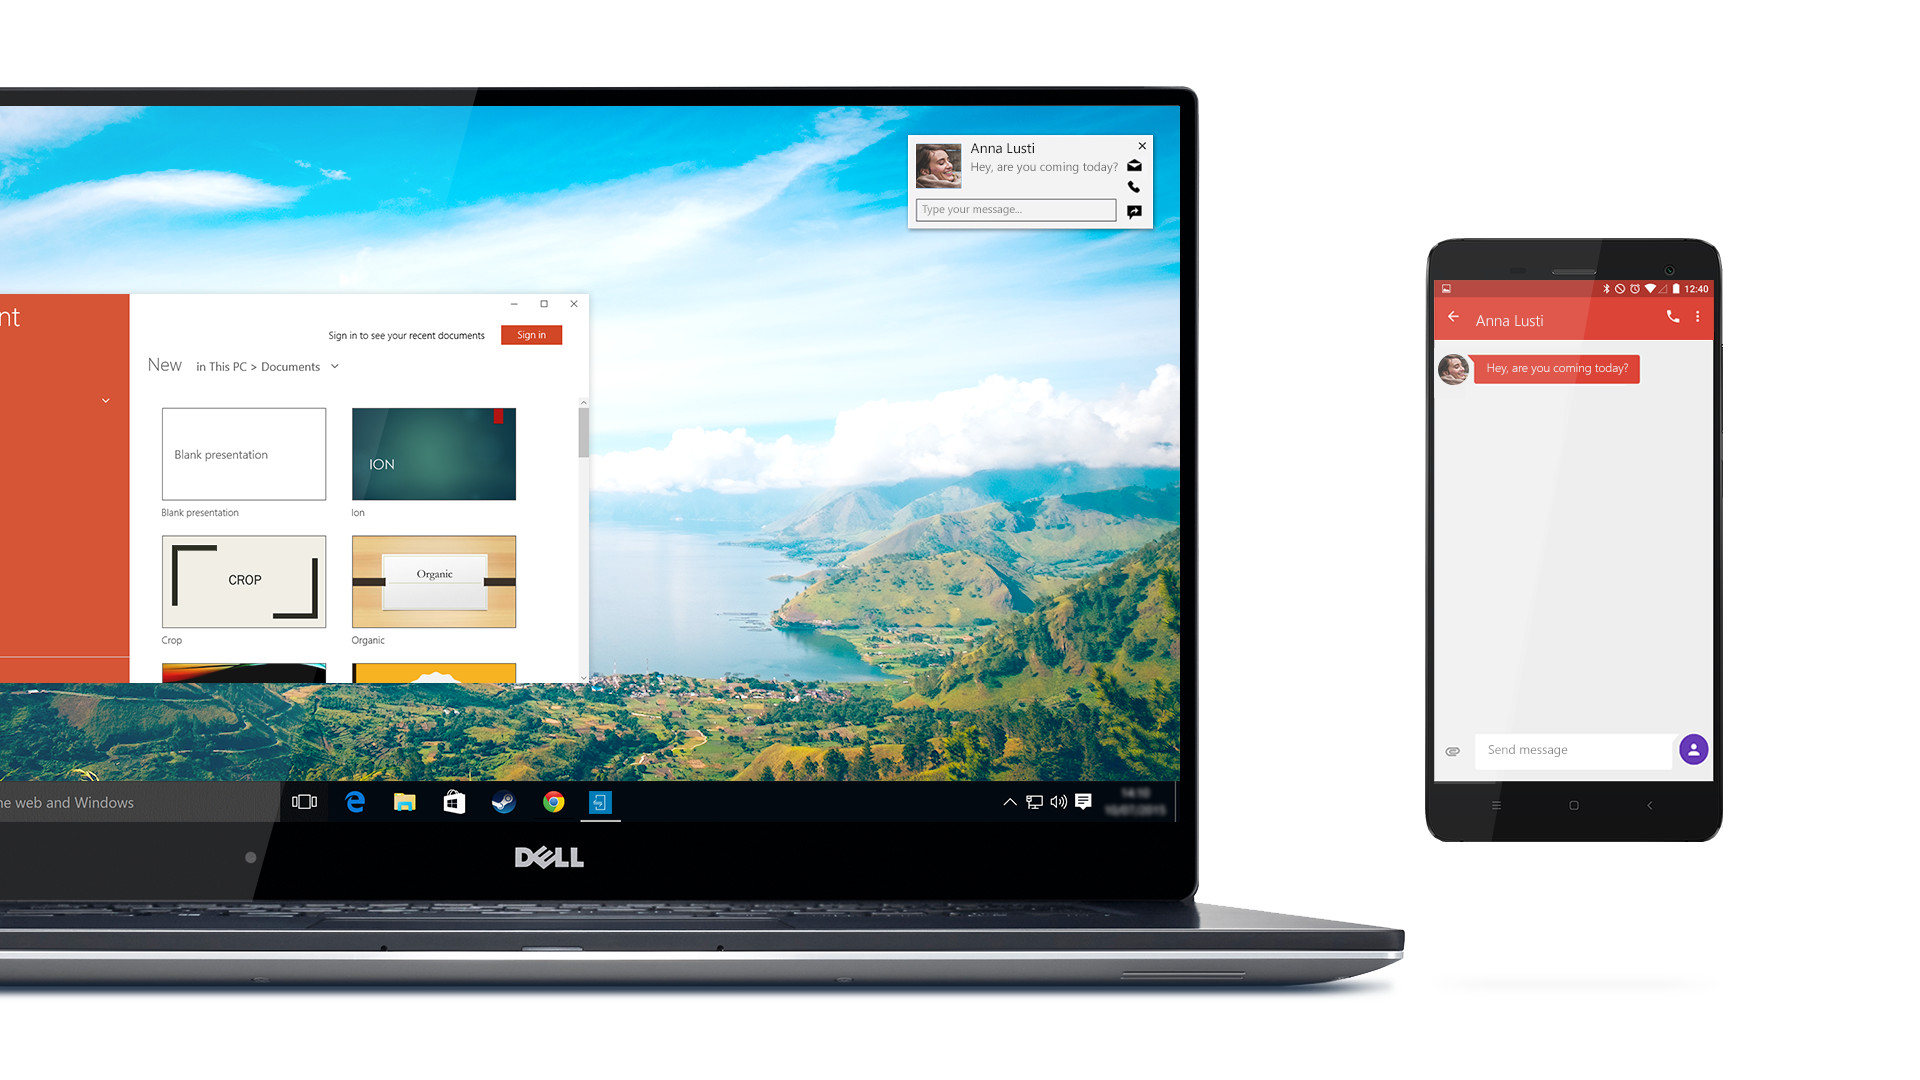 Dell Mobile Connect brings your calls, texts and notifications to your PC